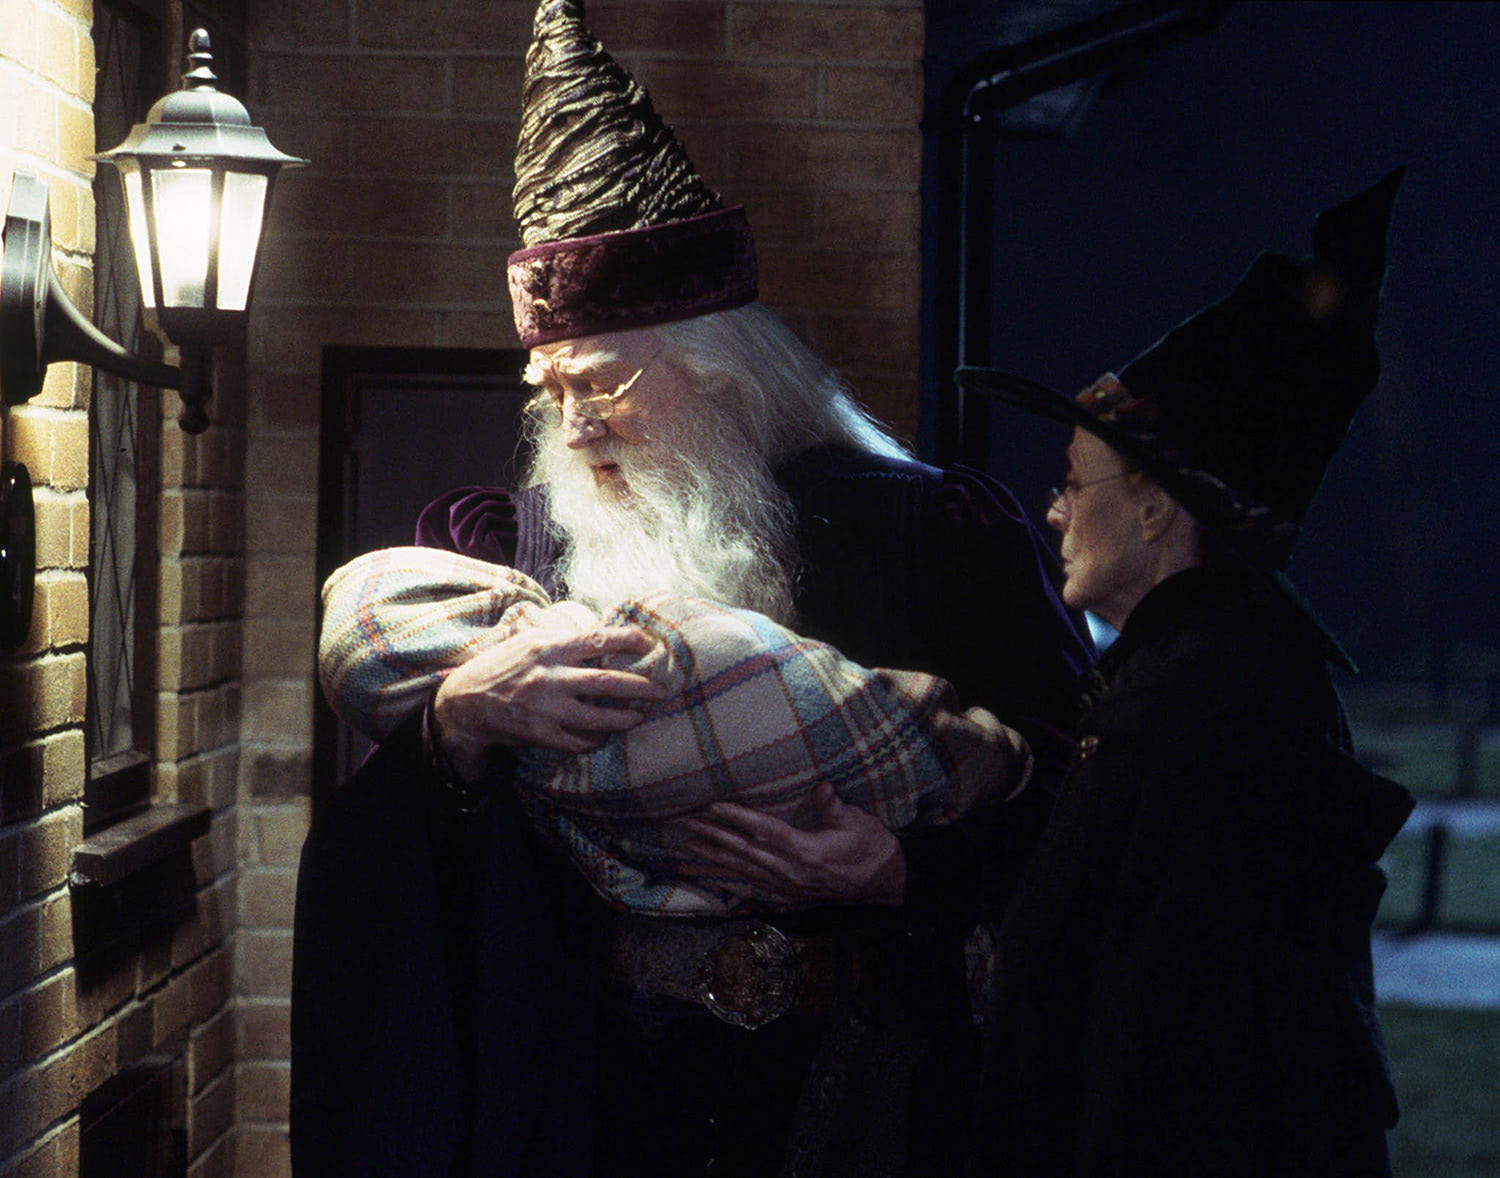 Dumbledore delivers baby Harry